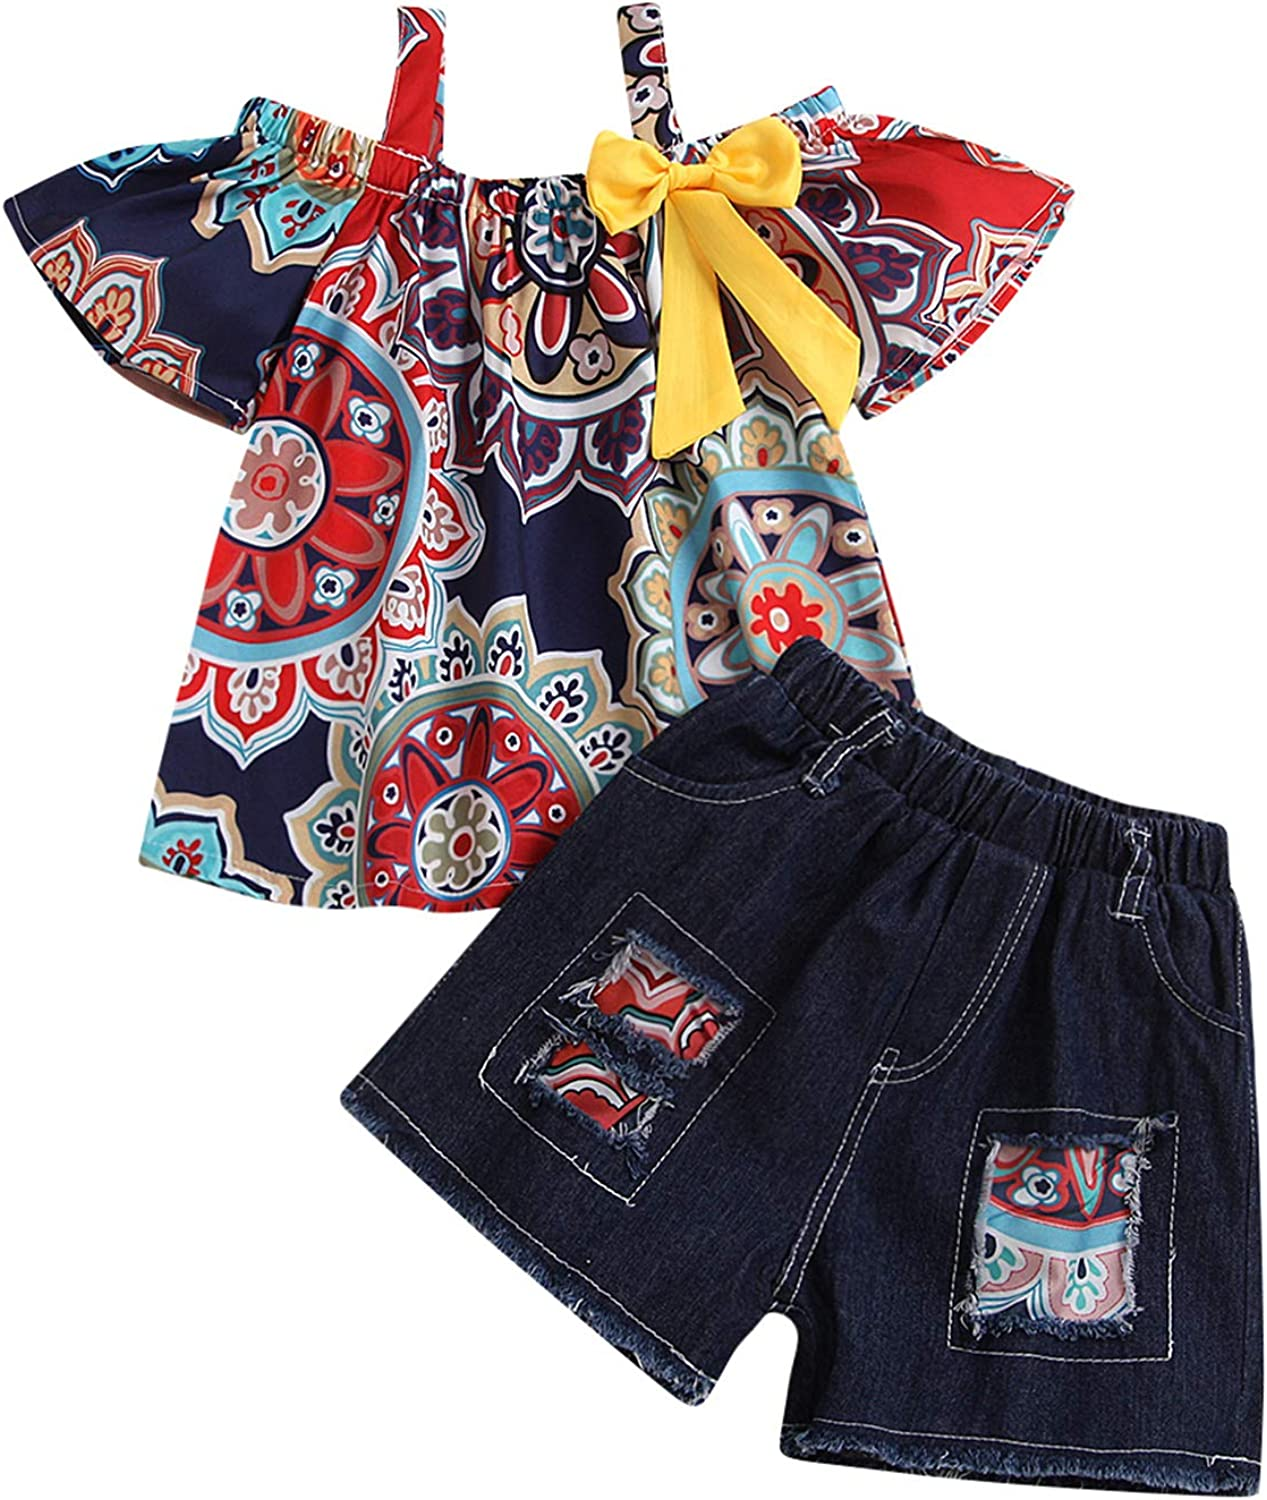 Toddler Two Piece Shorts Outfit Floral Bohemian Camisole Ruffle Crop Top Patchwork Denim Shorts Girls Summer Clothes